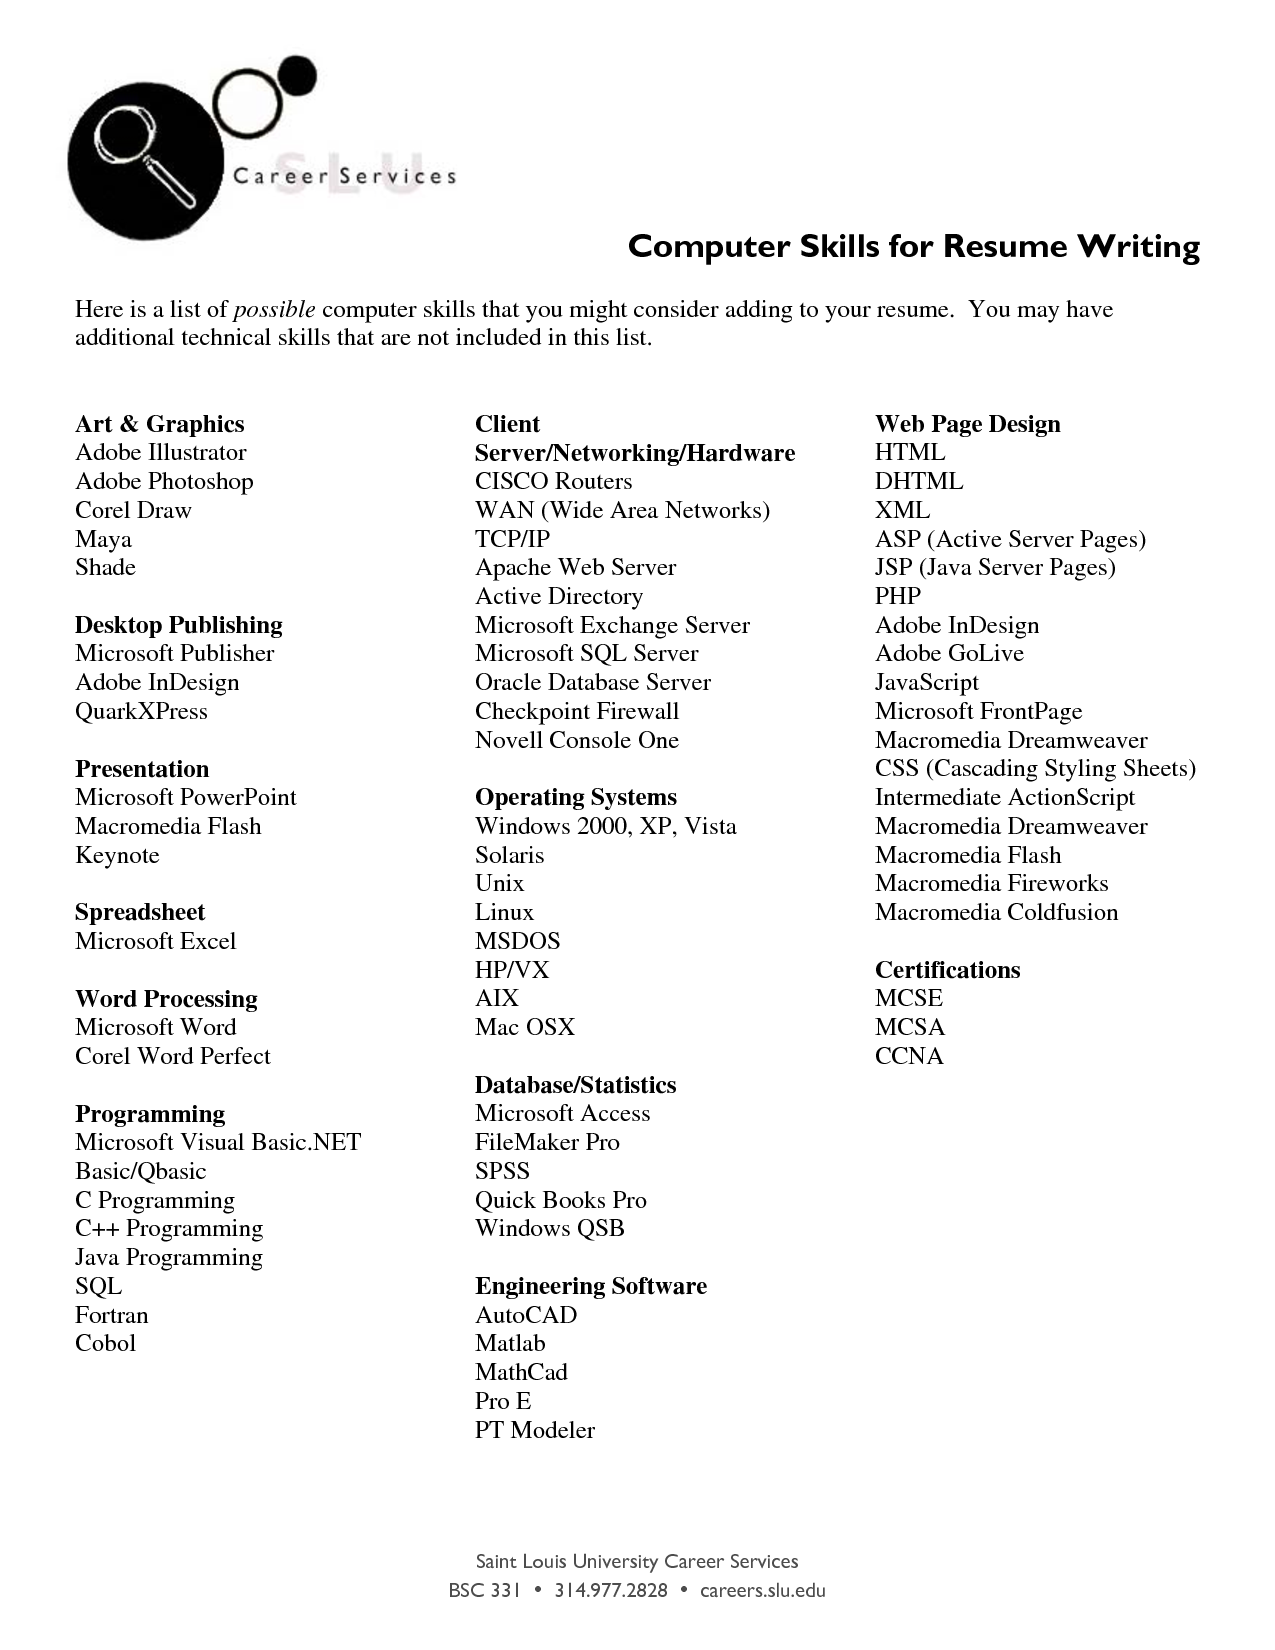 How To List Technical Skills On Resume Delectable Pinmaria Johnson On Work  Resumes And Cover Letters  Pinterest